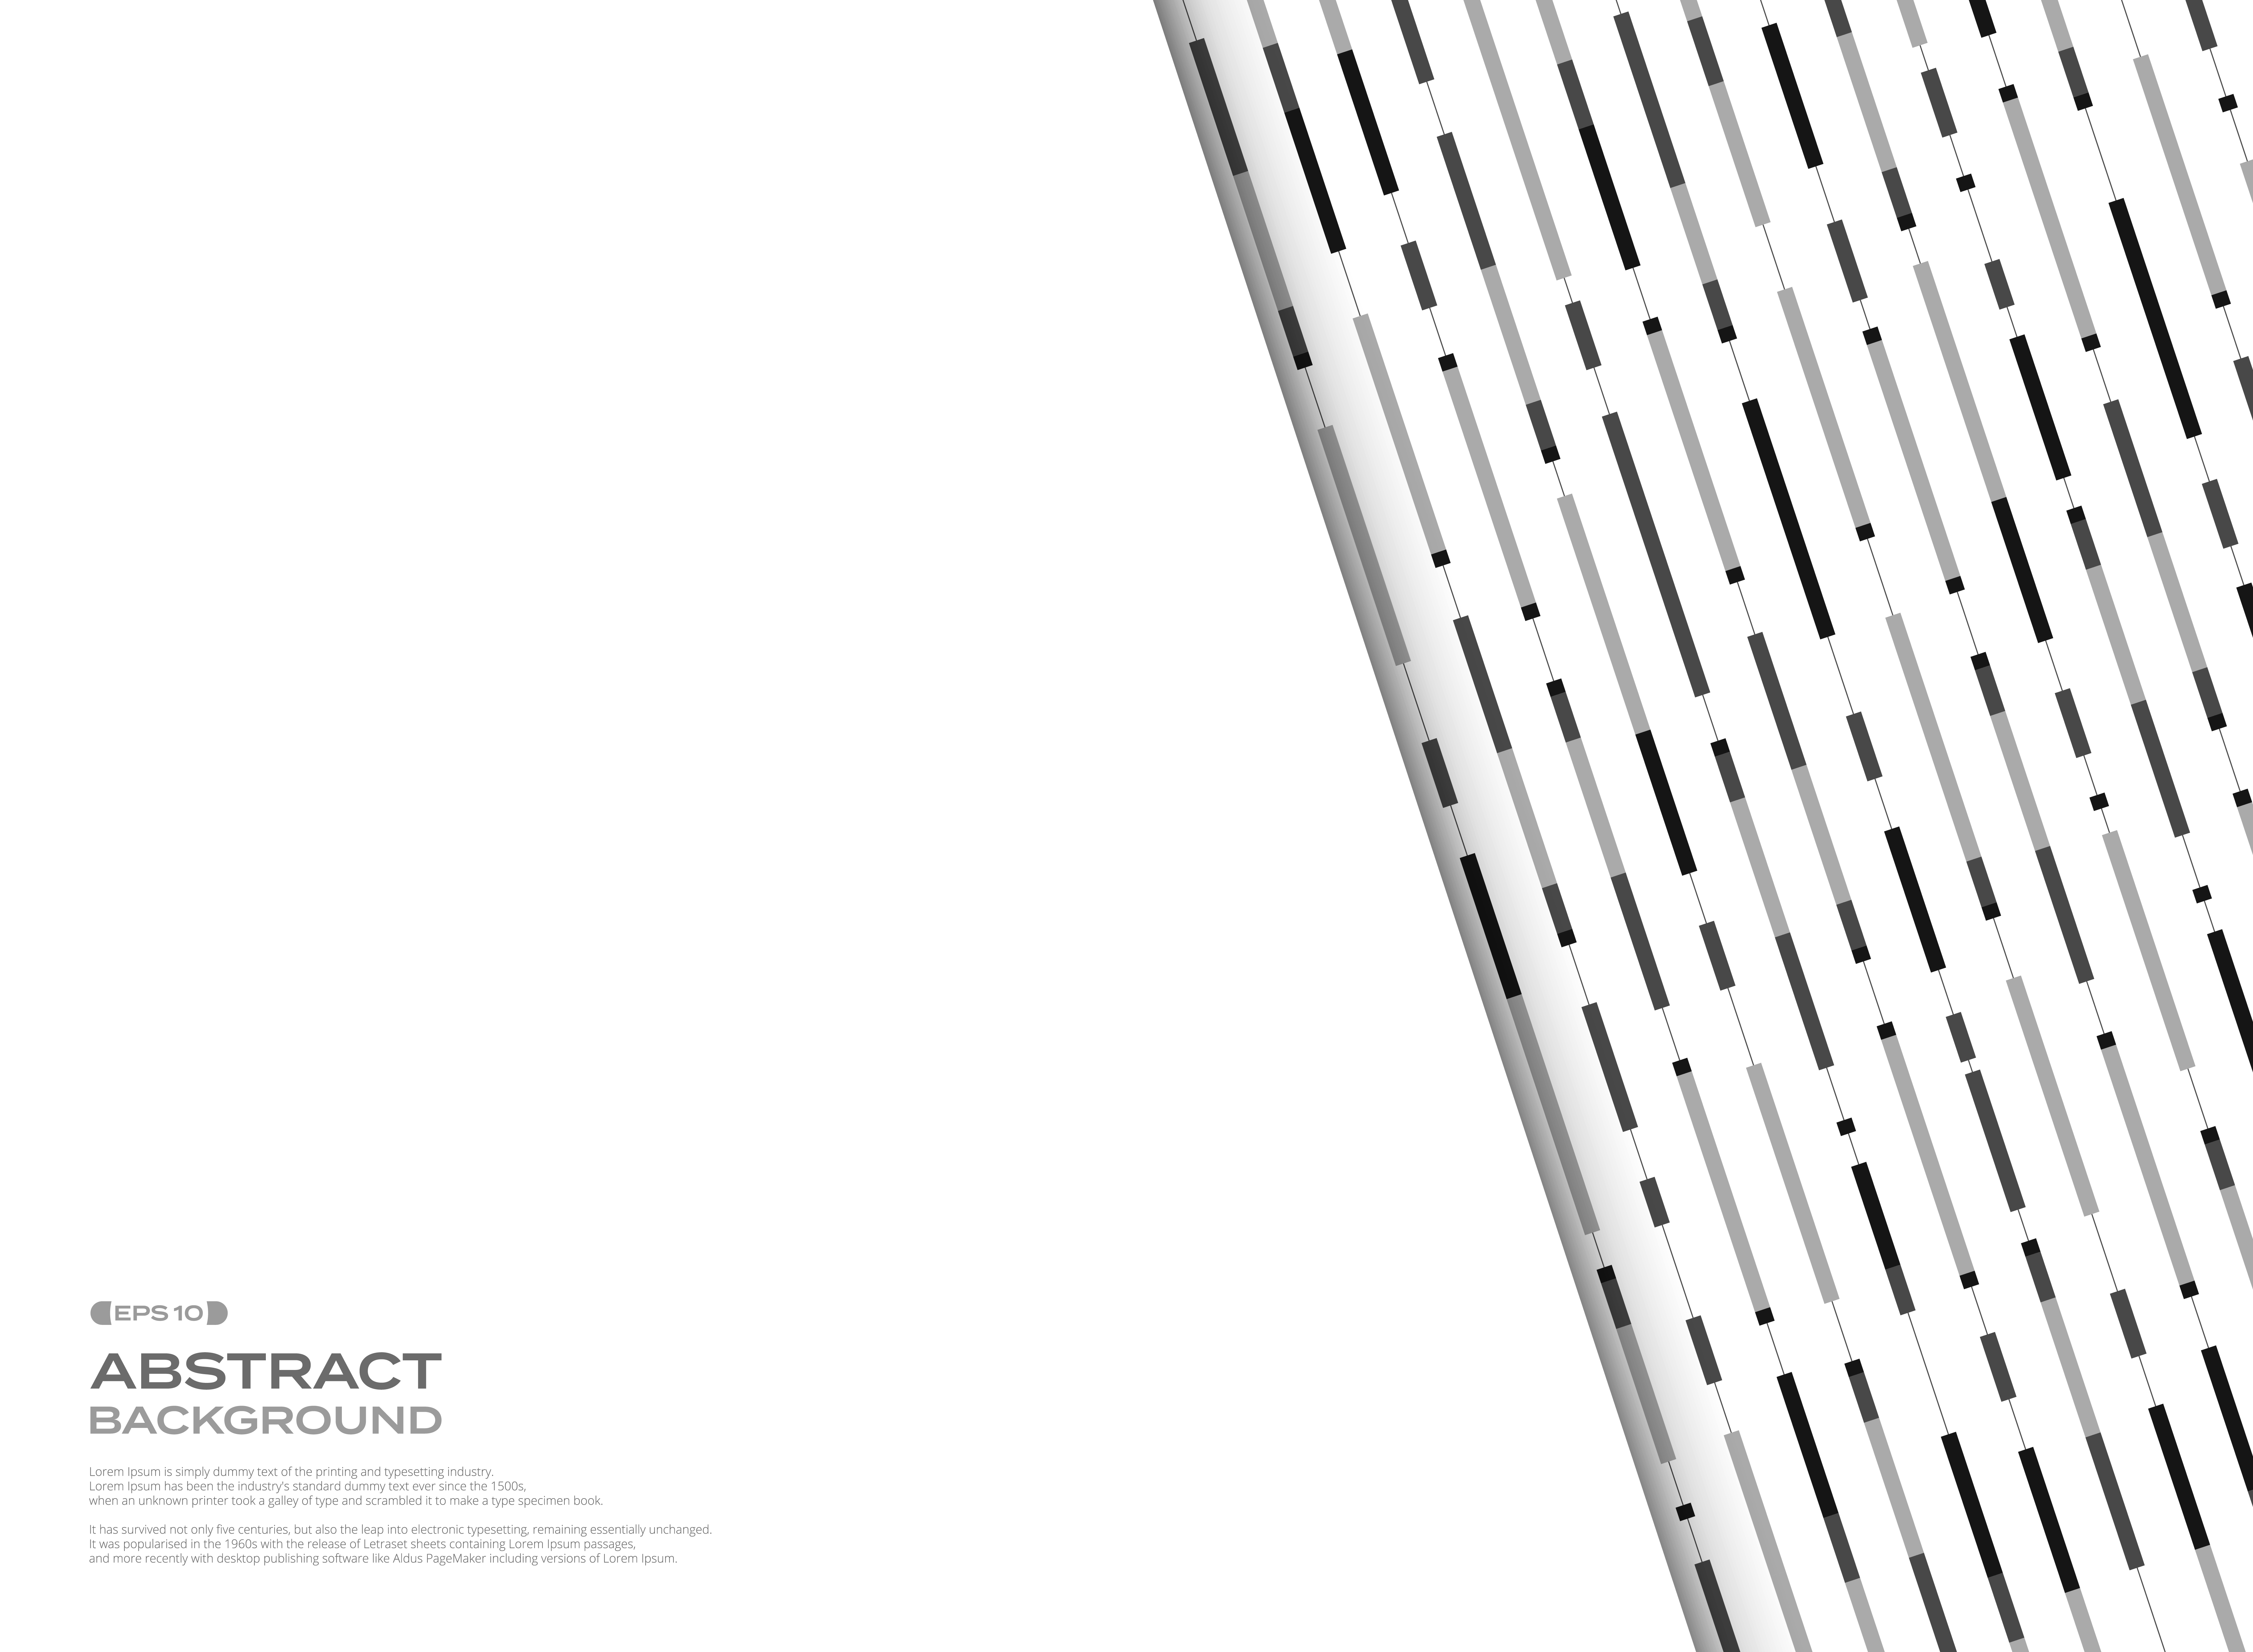 Abstract black and white geometric stripe lines pattern